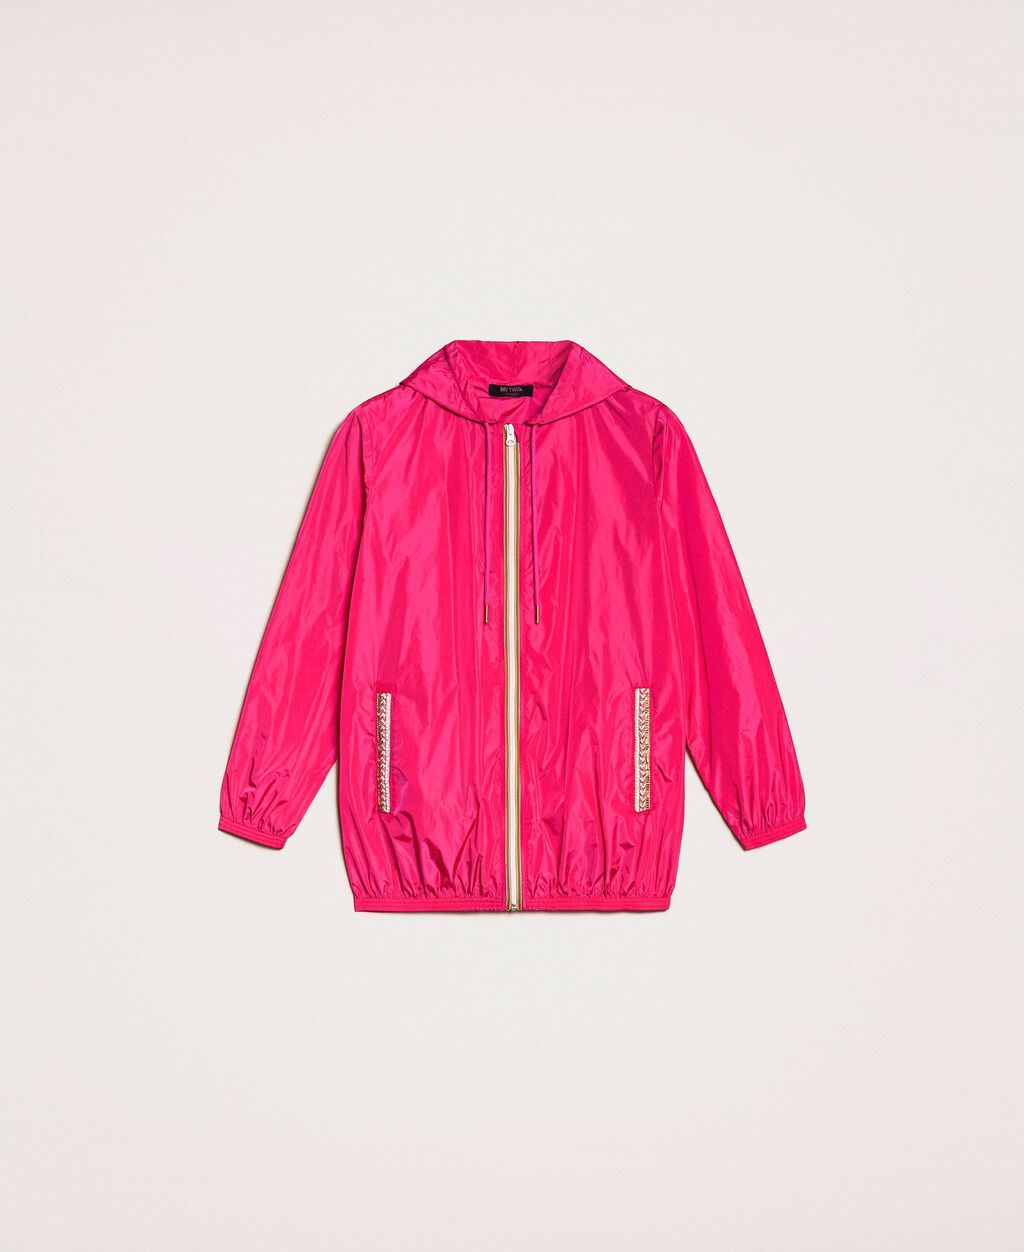 Rainproof jacket with embroidery